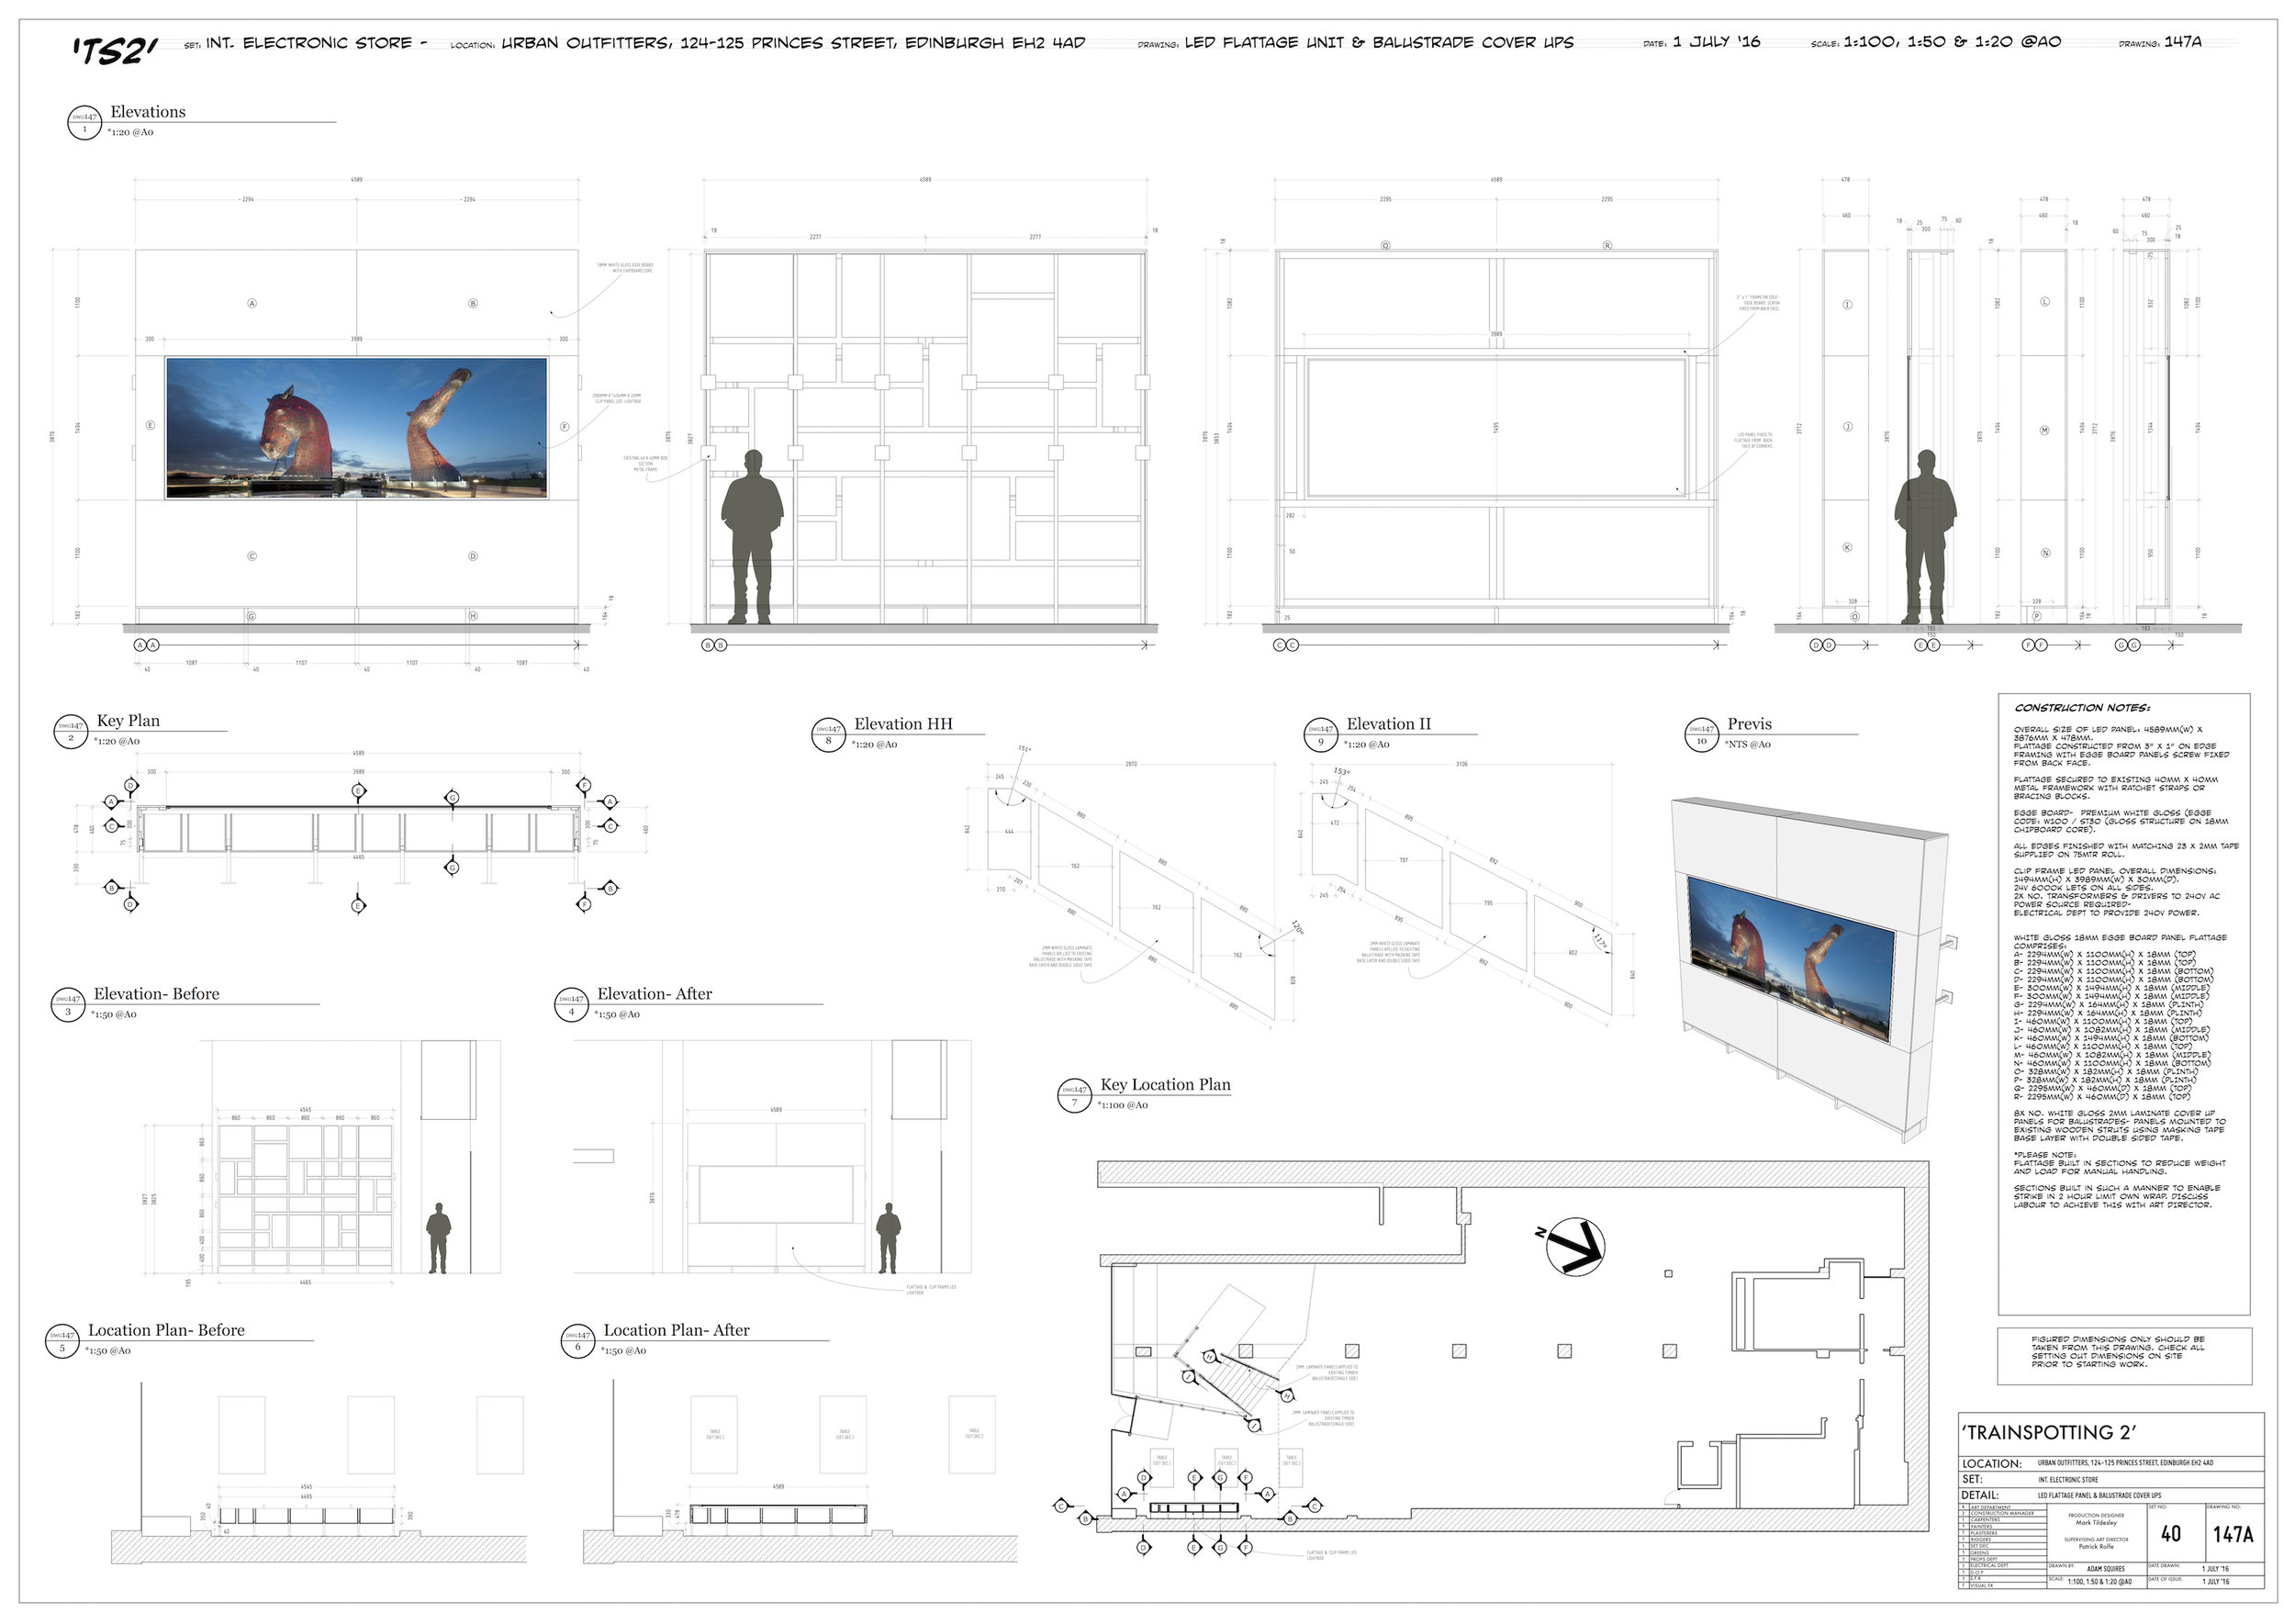 TS2_DWG147A_Int Electronic Store_ASquires2016.jpg